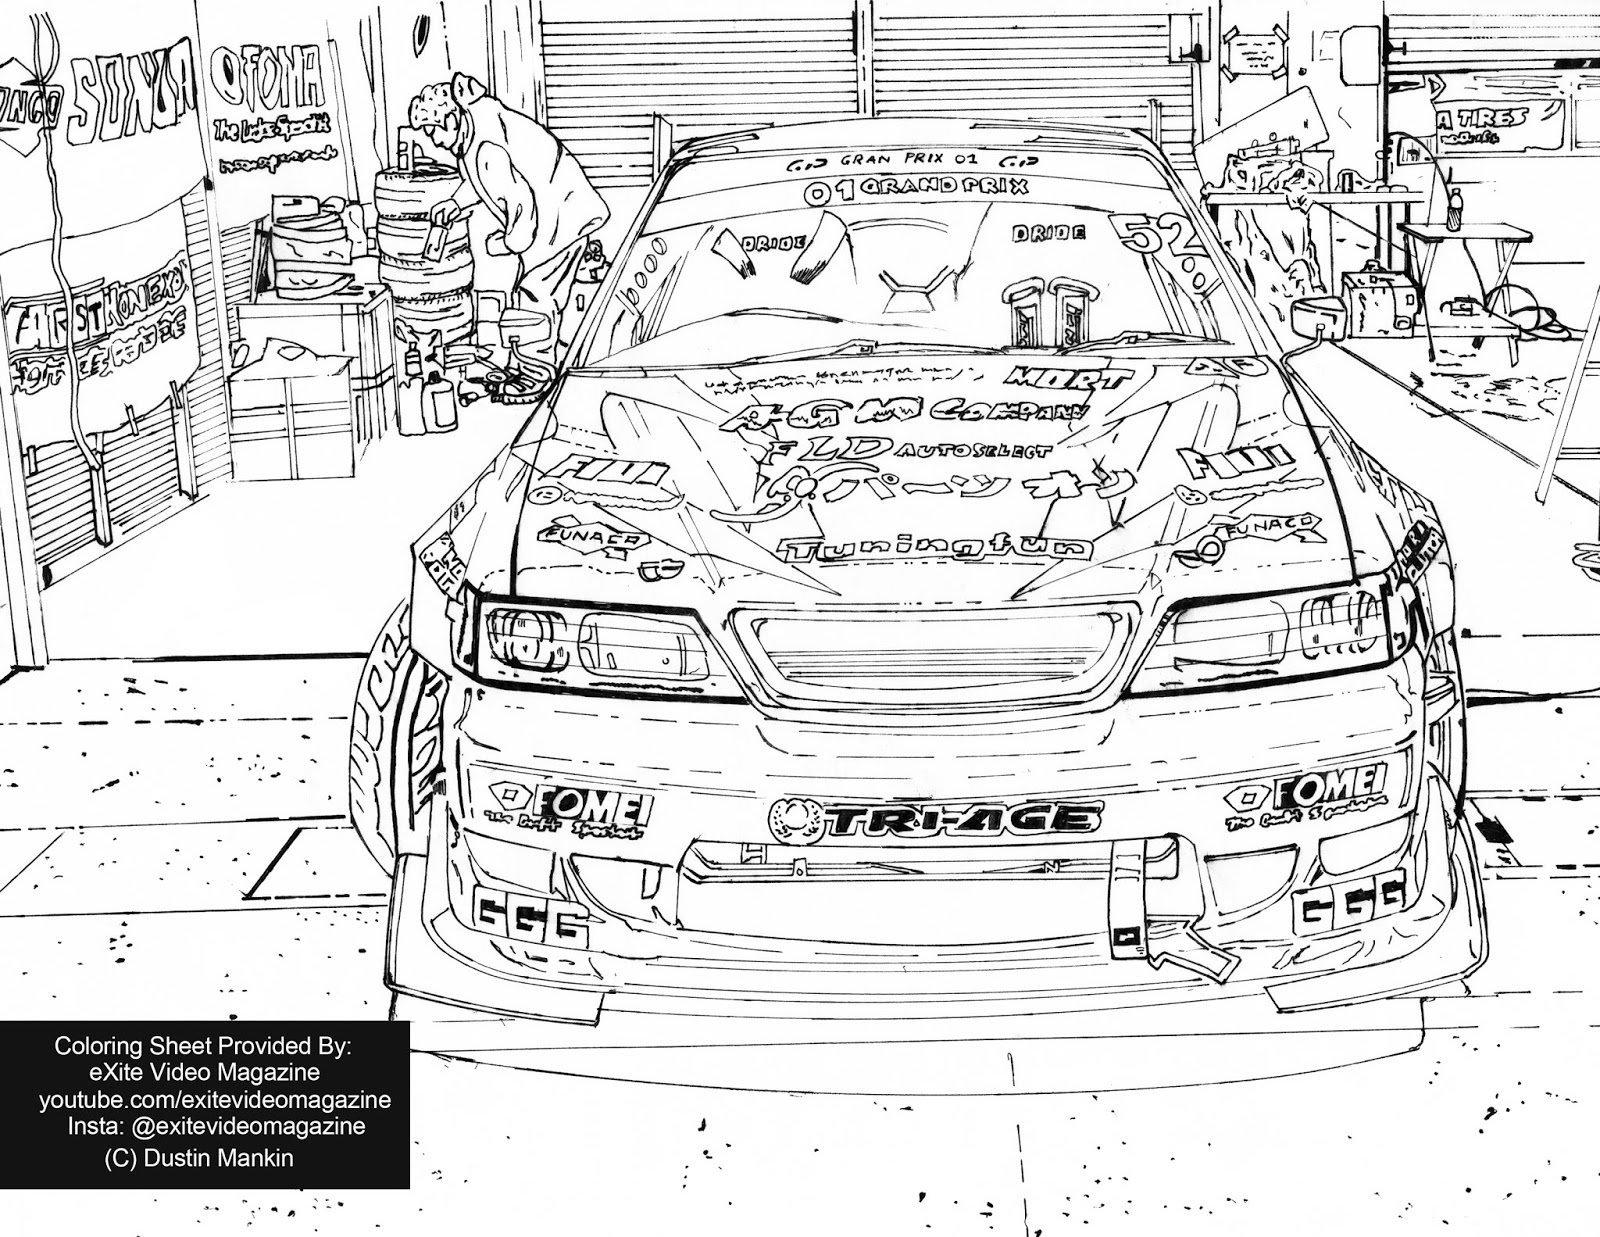 Exite Video Magazine Free Jdm Drift Coloring Page Japanese Cars Coloring Page Beat Corona Lock Downs By Coloring Drift Cars